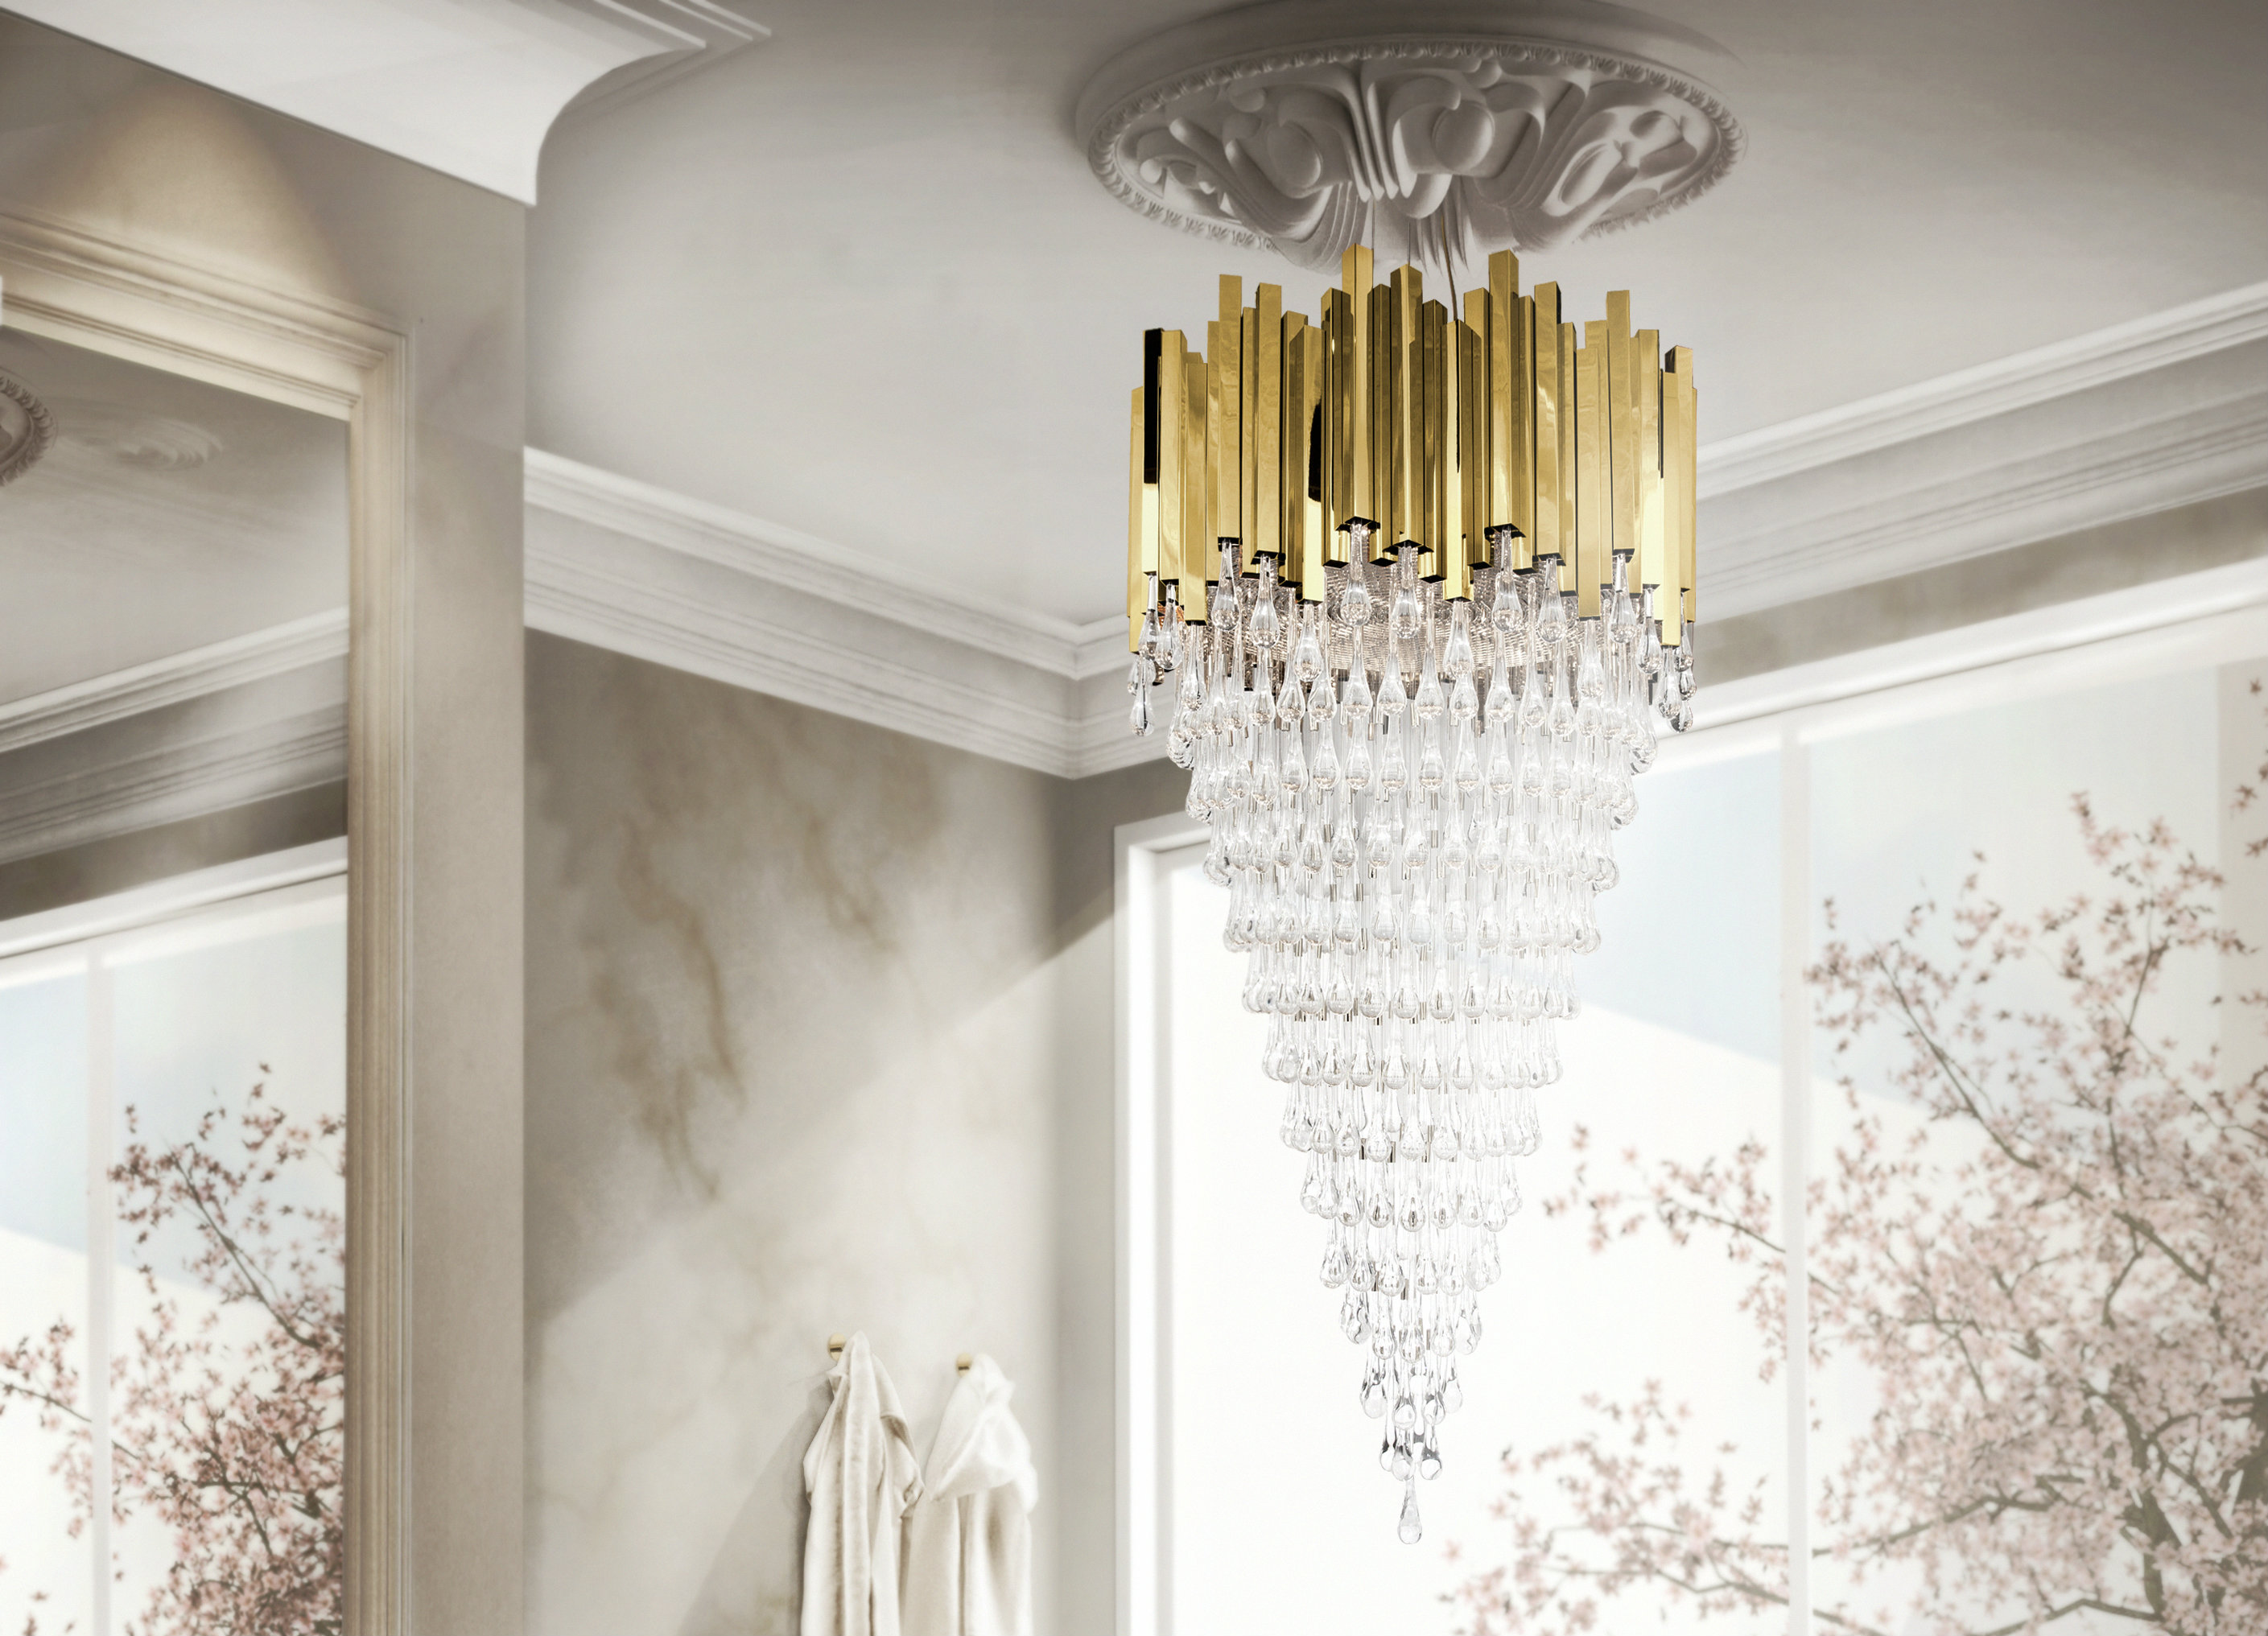 5 Gold chandeliers with crystals to light up your world bathroom lighting ideas 5 Bathroom Lighting Ideas You need to Use in 2017 trump chandeleir 2 bathroom lighting ideas 5 Bathroom Lighting Ideas You need to Use in 2017 trump chandeleir 2